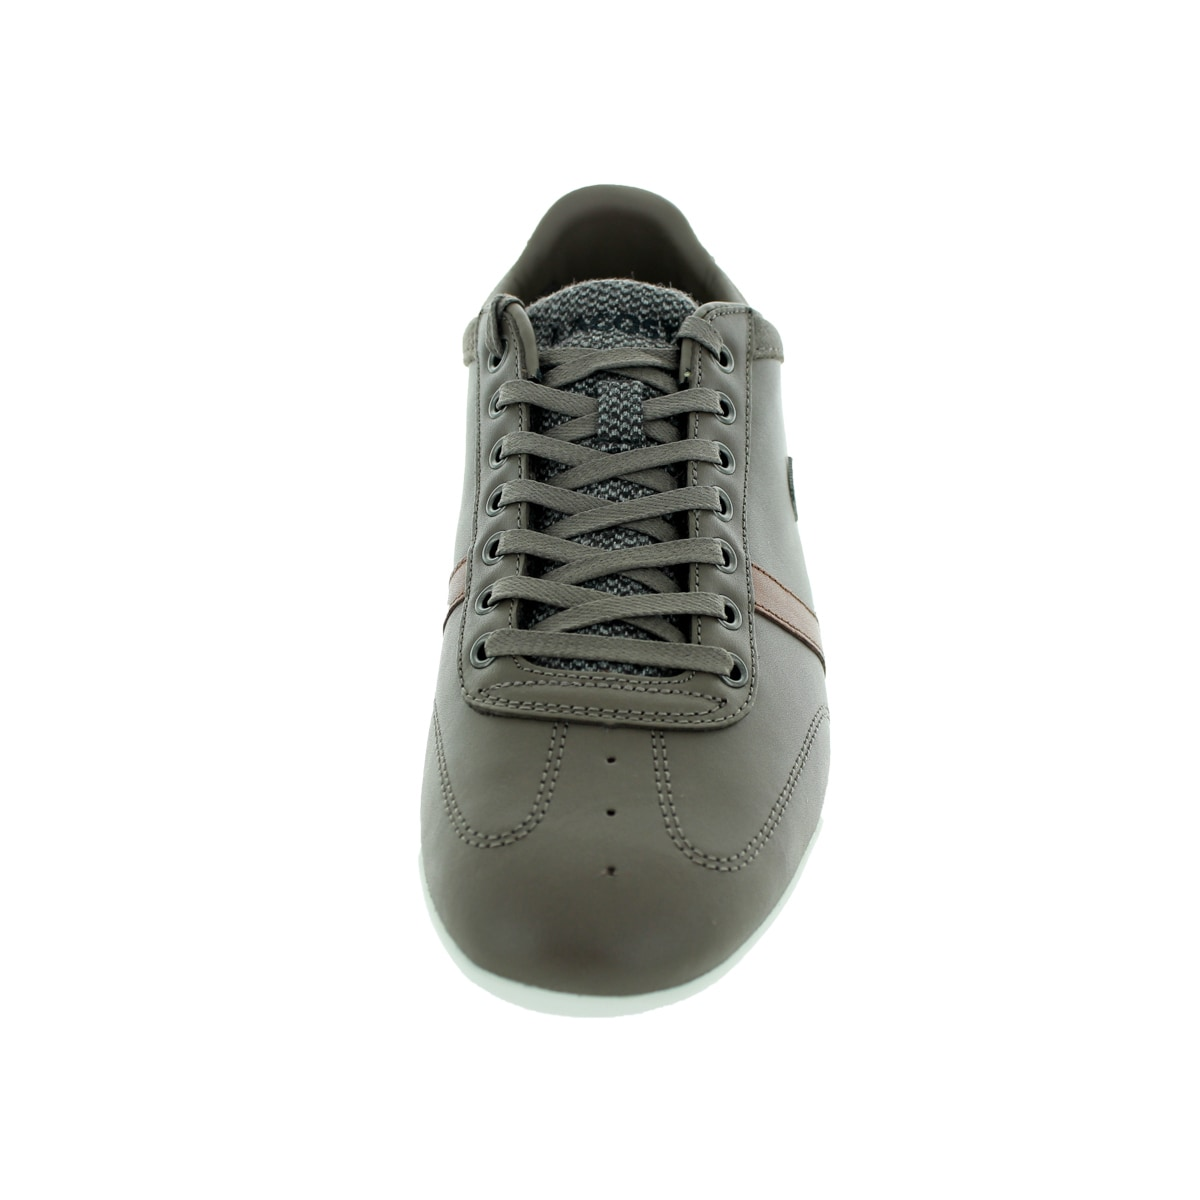 30a3ca3fe6af Shop Lacoste Men s Misano 32 Srm Khaki Casual Shoe - Free Shipping Today -  Overstock.com - 12330660